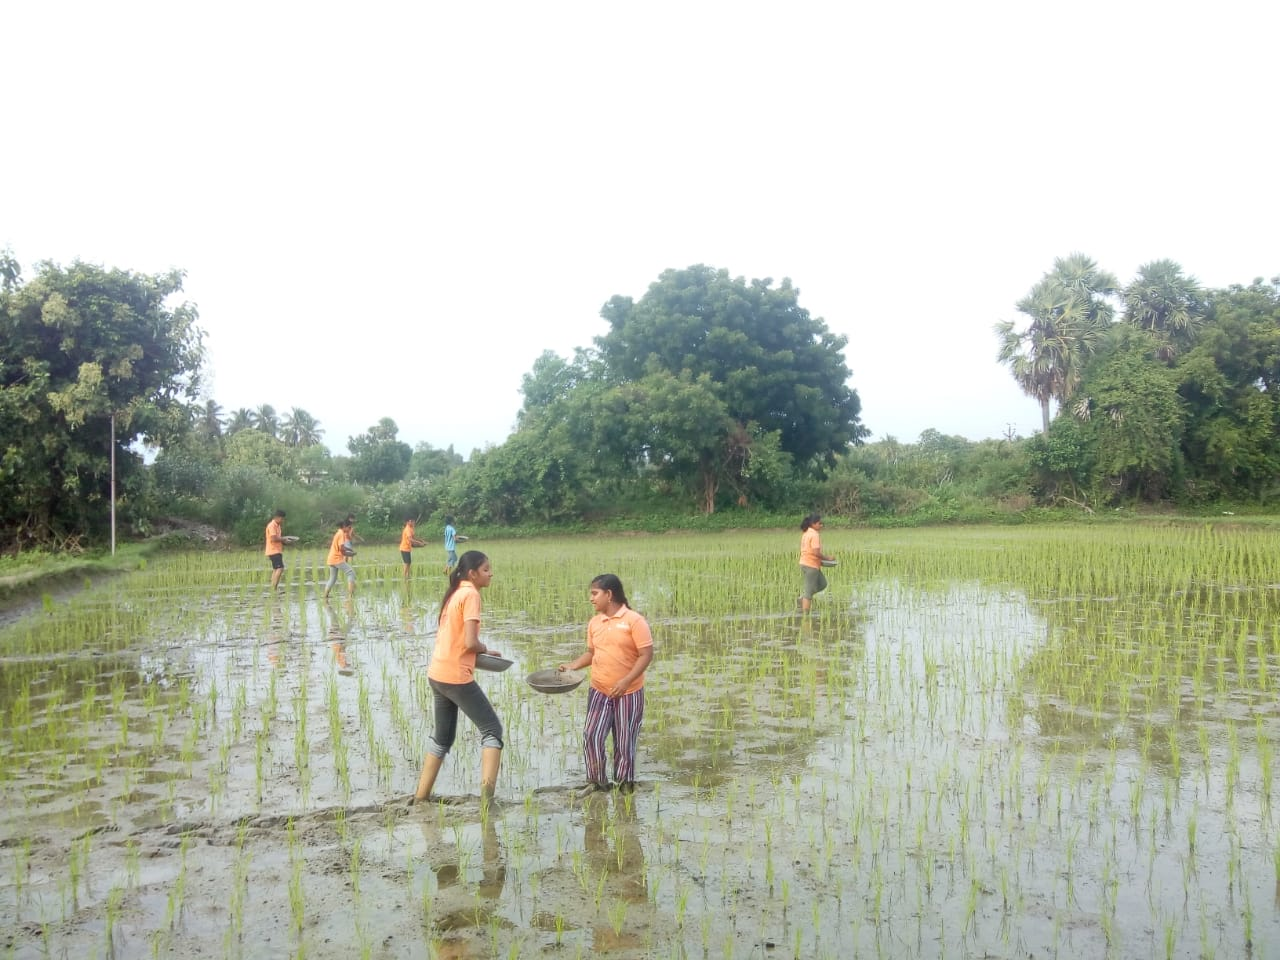 Manuring the Paddy Field